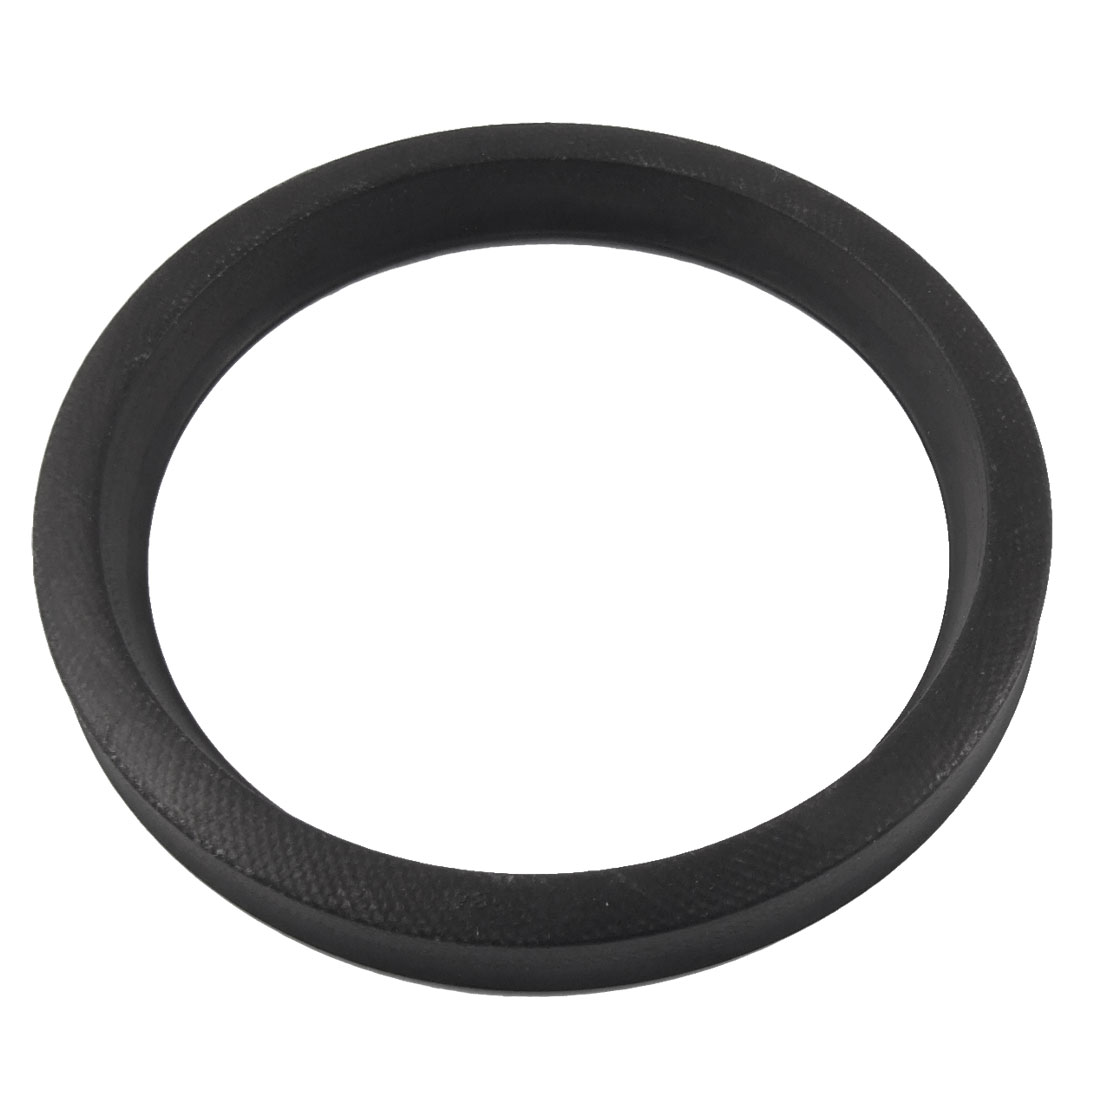 Cylinder Piston Rod Black NBR 60mm x 70mm x 8mm Oil Seal Gasket S8